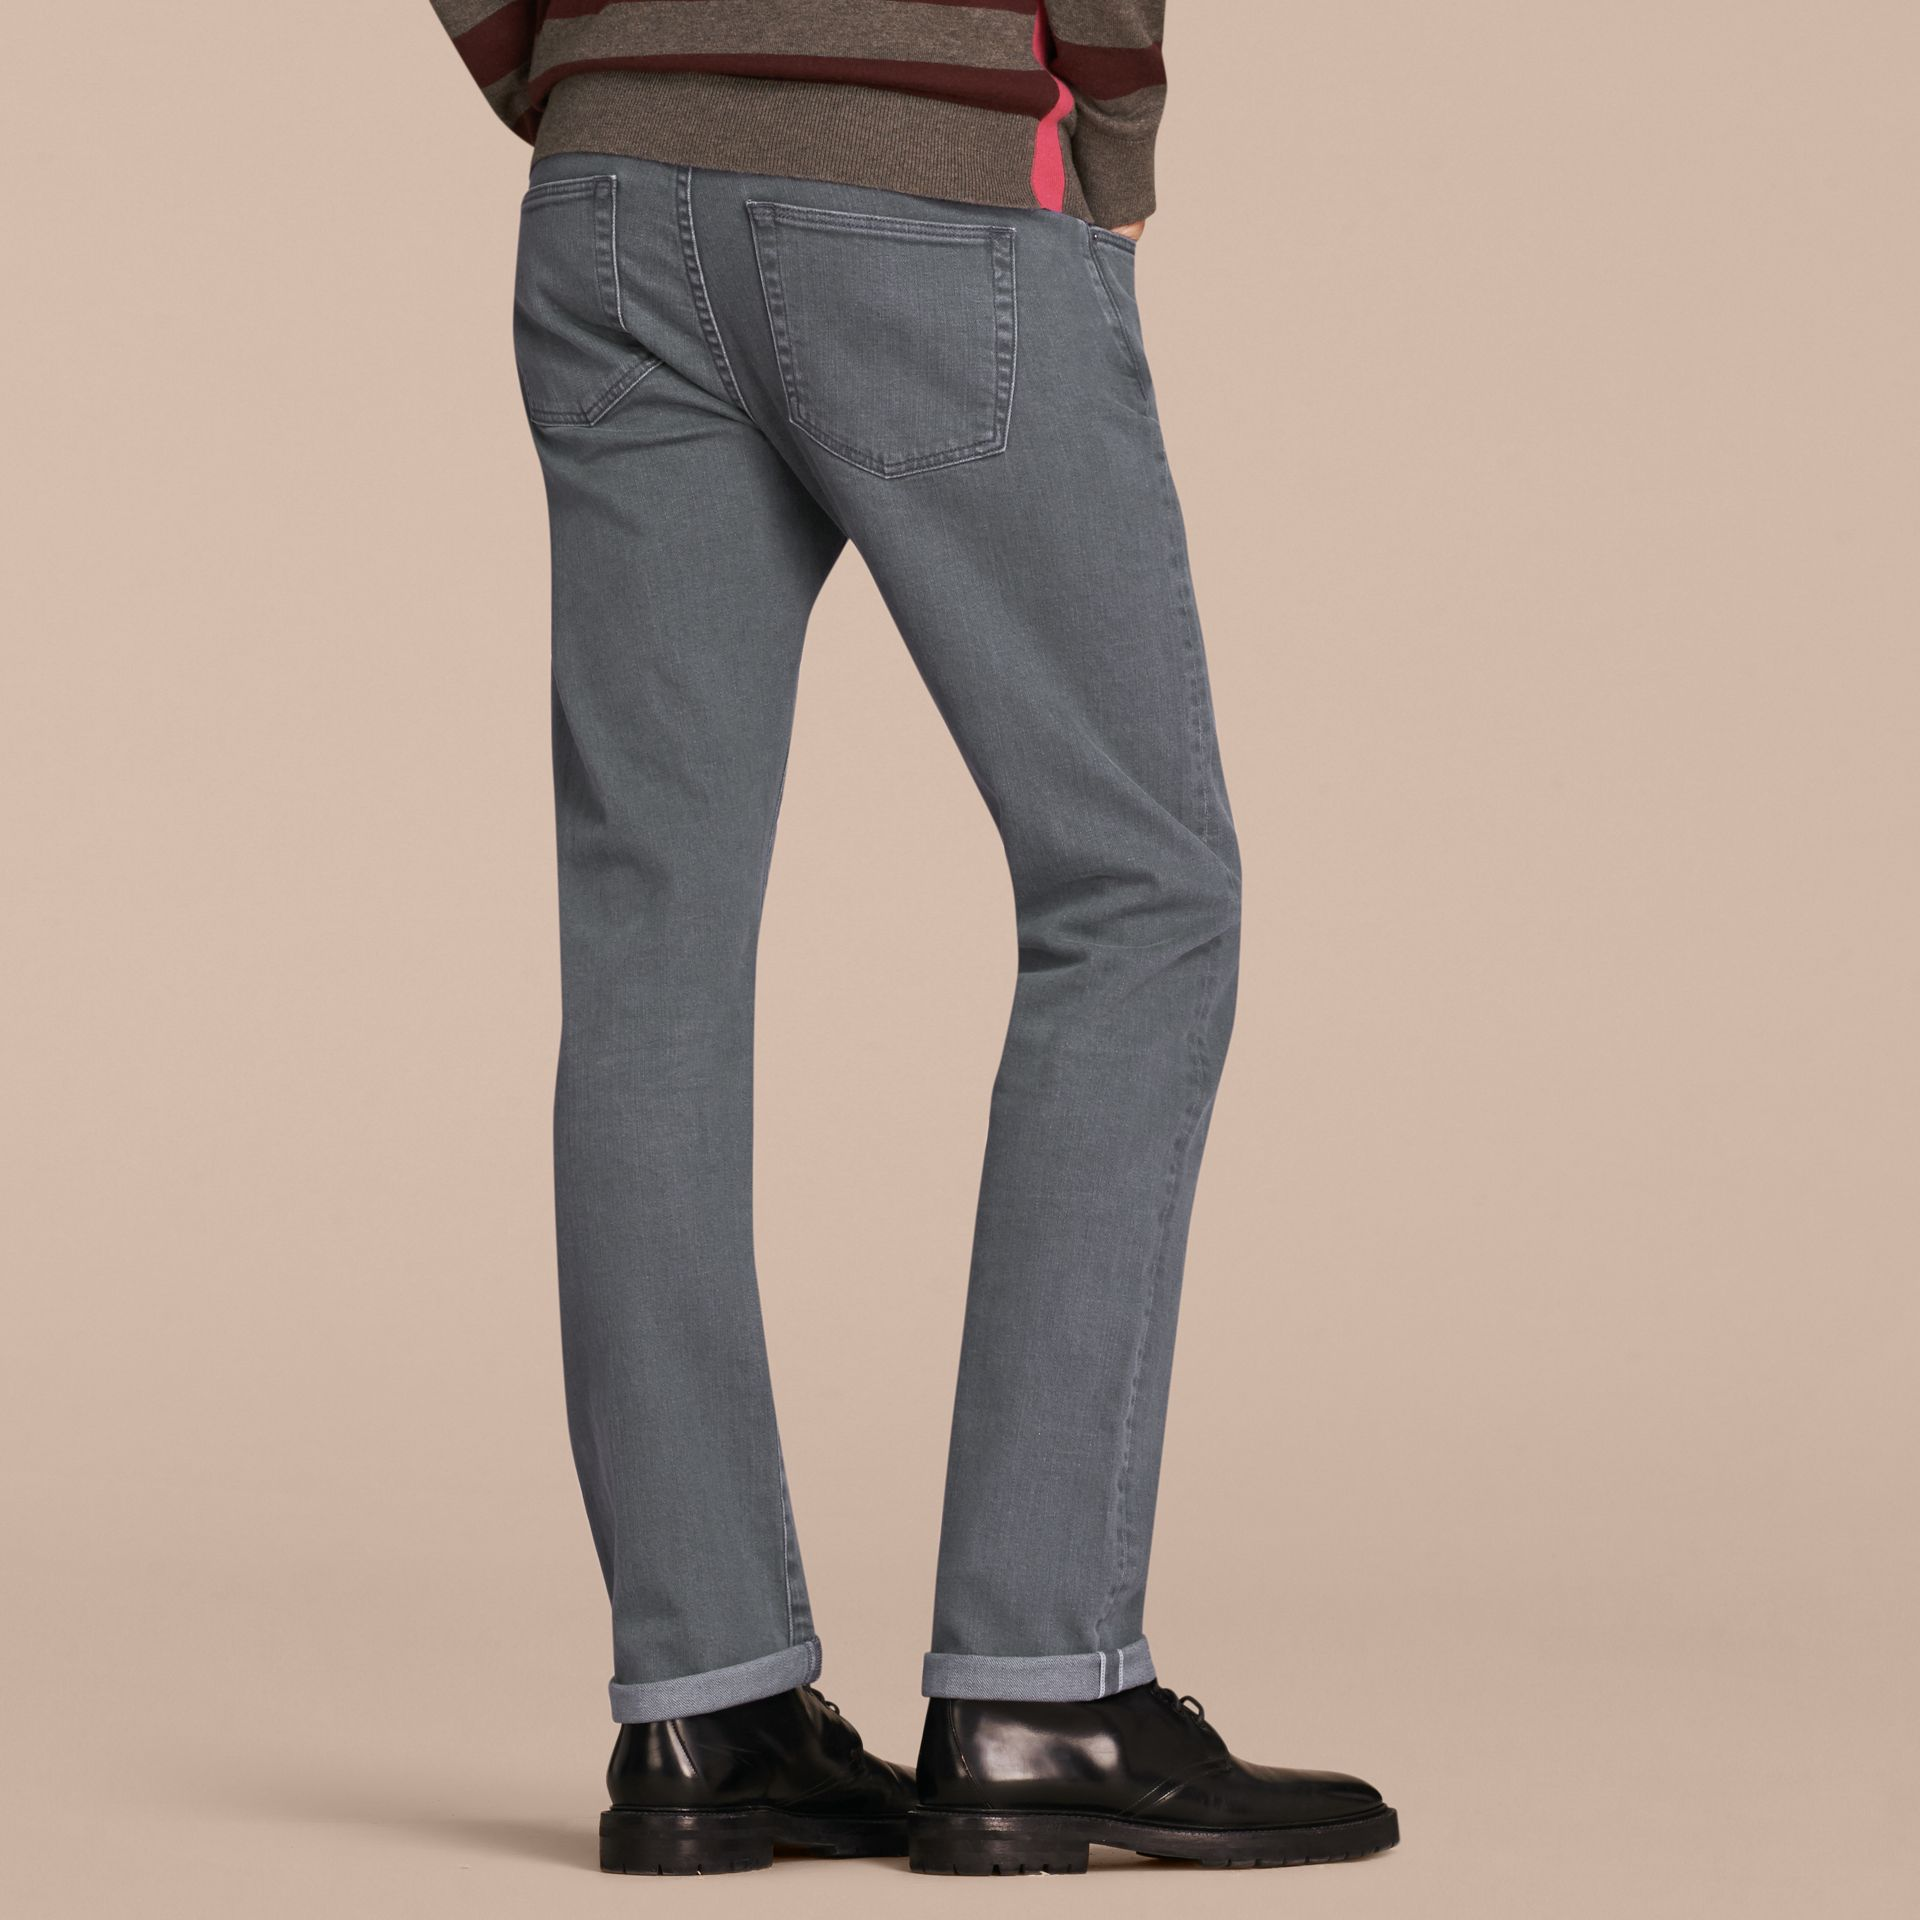 Jean de coupe droite en denim selvedge japonais - Homme | Burberry - photo de la galerie 3